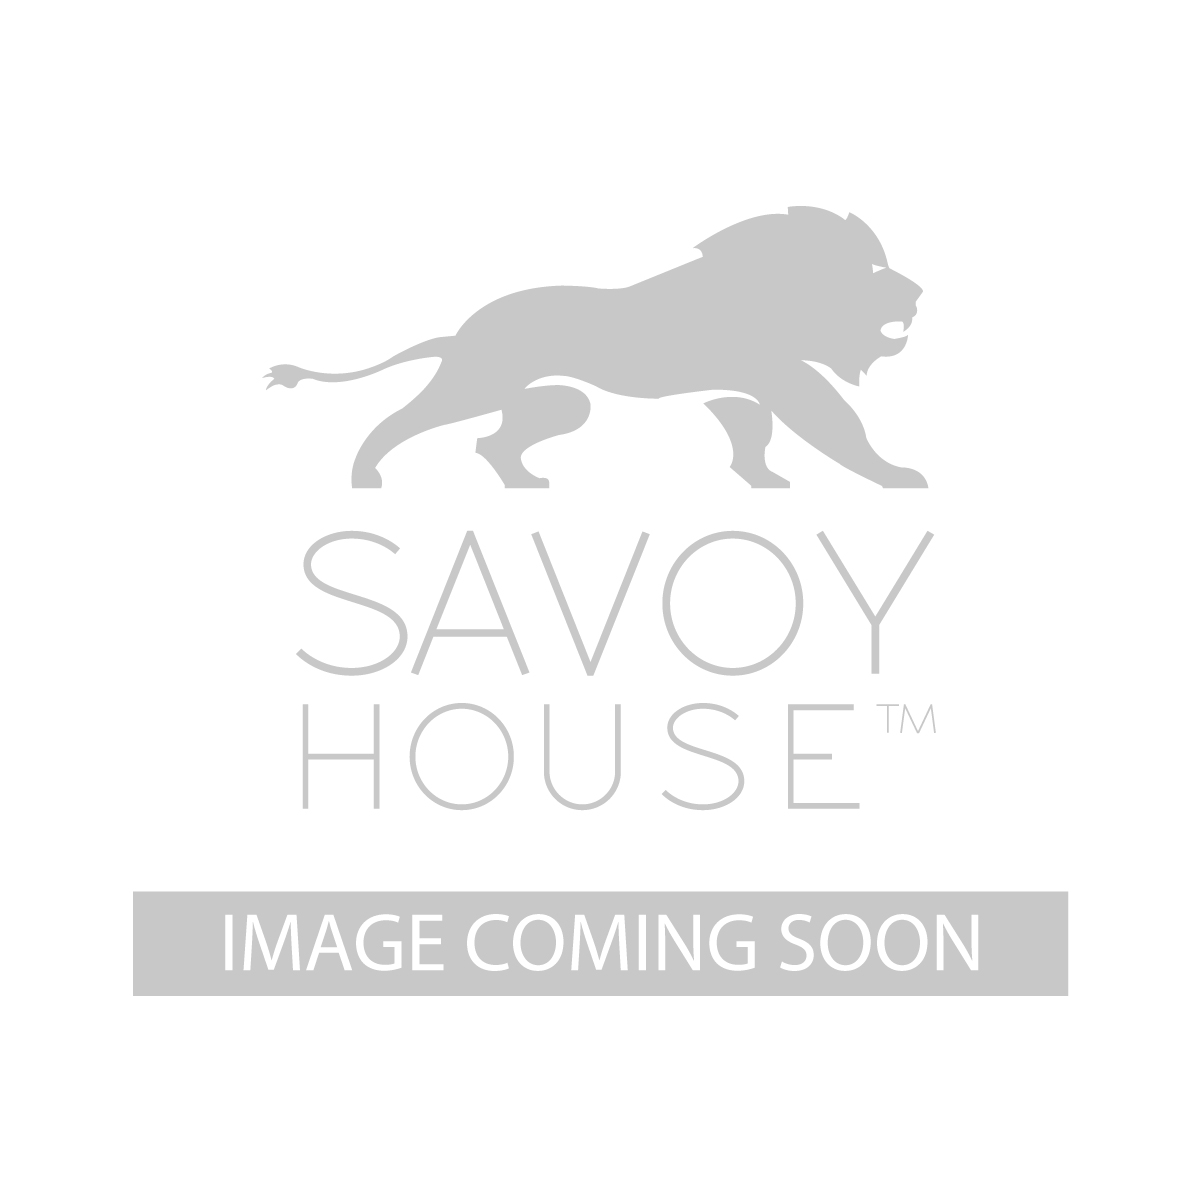 56 180 5CN 109 Phoebe 56 inch Ceiling Fan by Savoy House